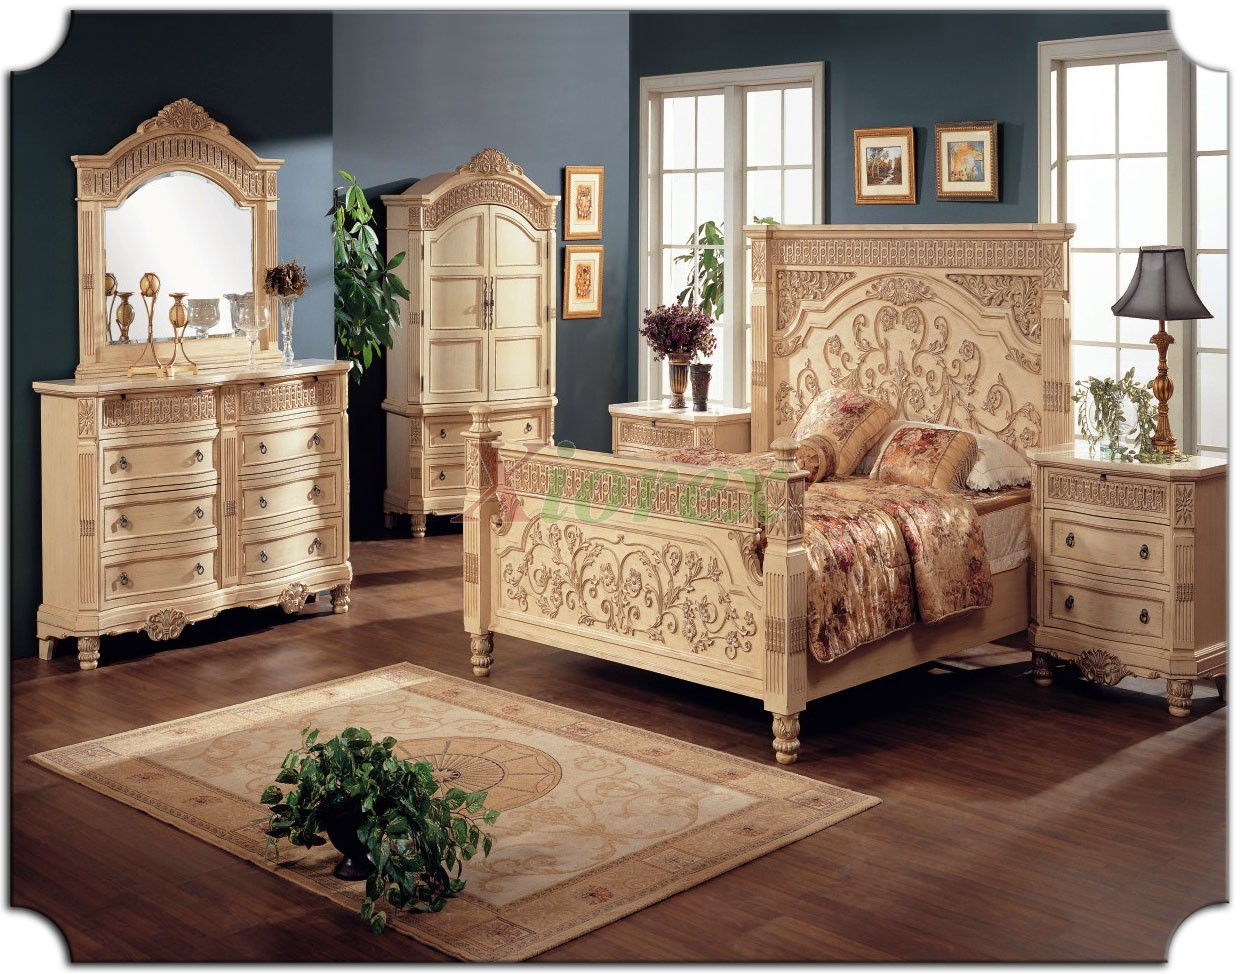 Poster bedroom furniture set w tall headboard beds 116 for Traditional bedroom furniture